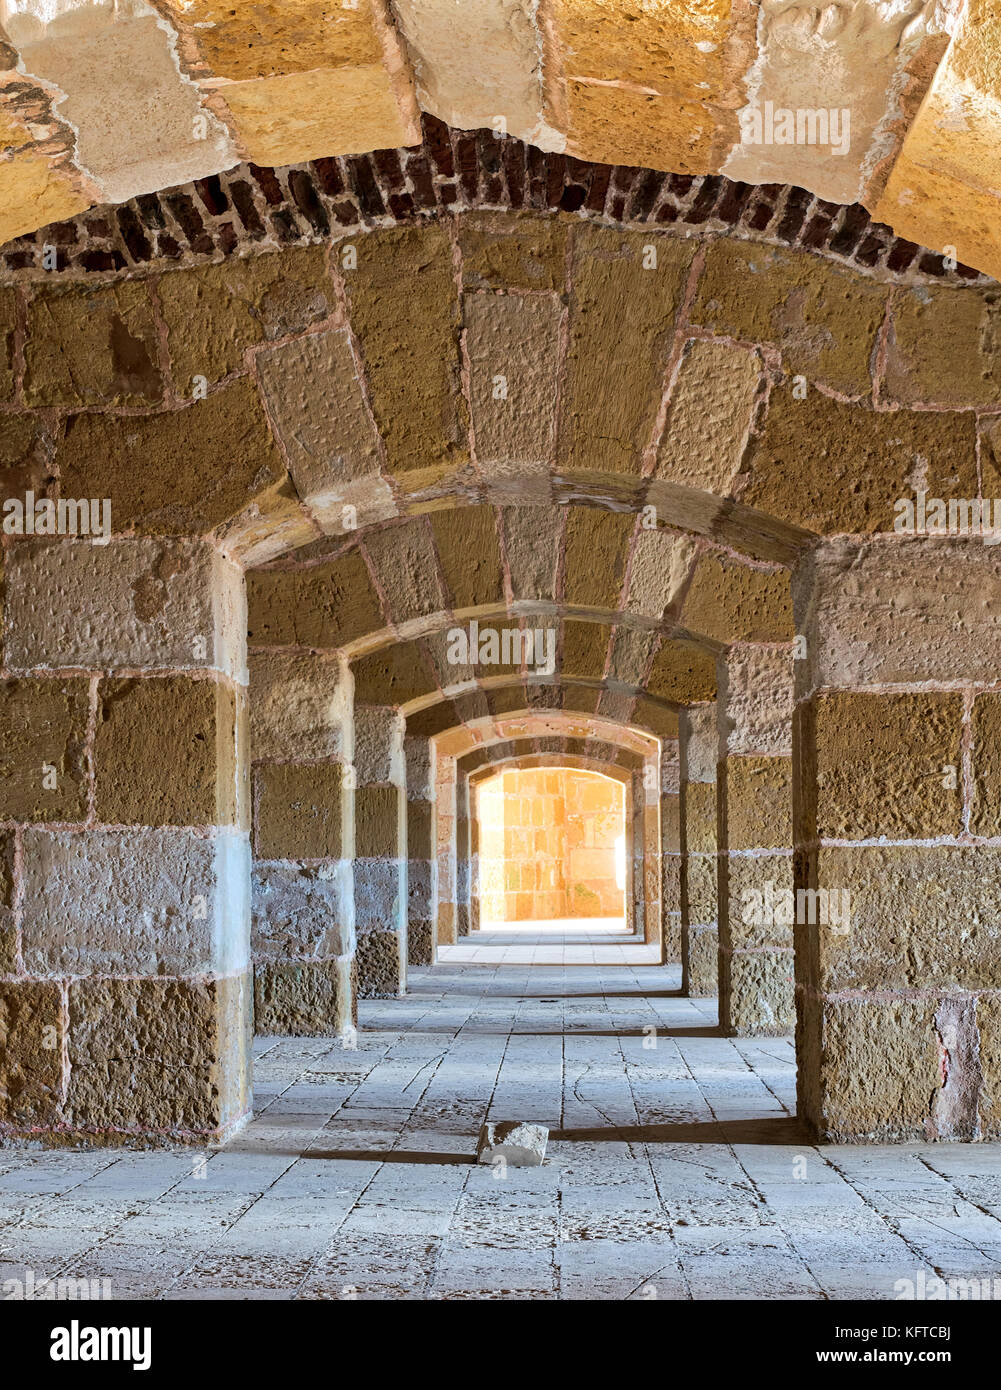 Stoned arched Passage under Kayet Bey Castle, Alexandria, Egypt - Stock Image